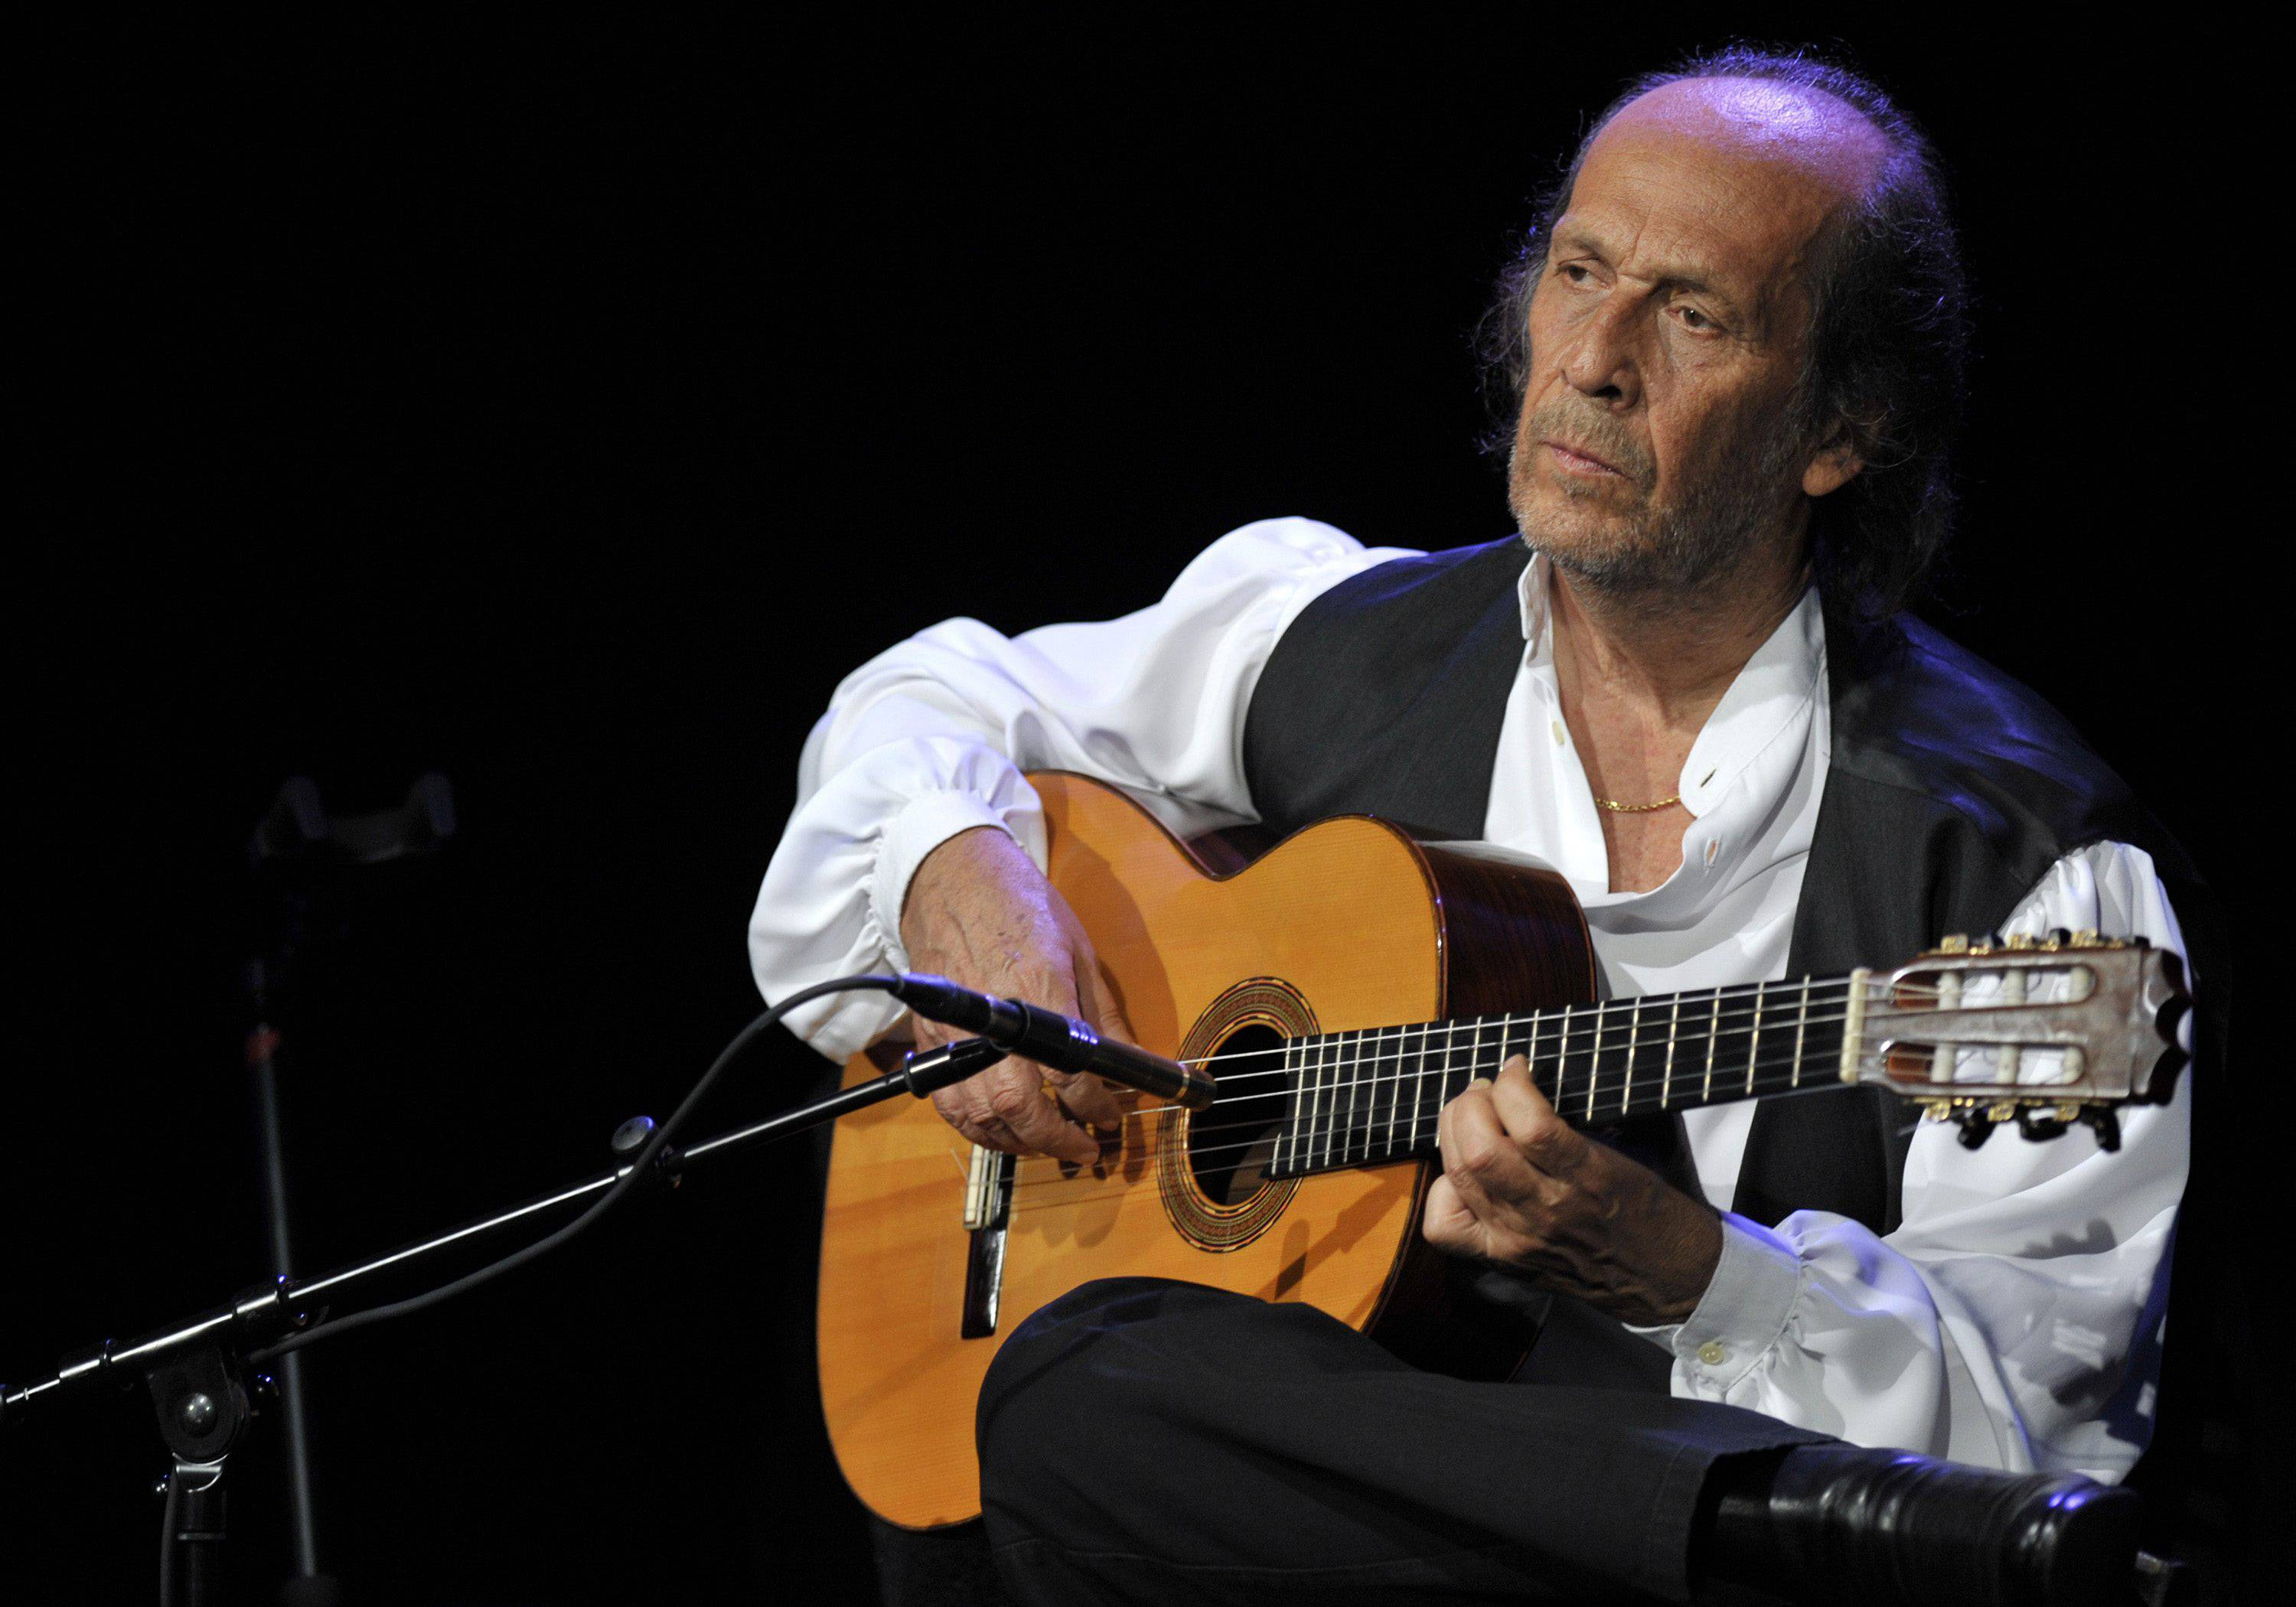 Spanish flamenco guitarist Paco de Lucia performs on the Miles Davis Hall stage at the 44th Montreux Jazz Festival, in Montreux, Switzerland.